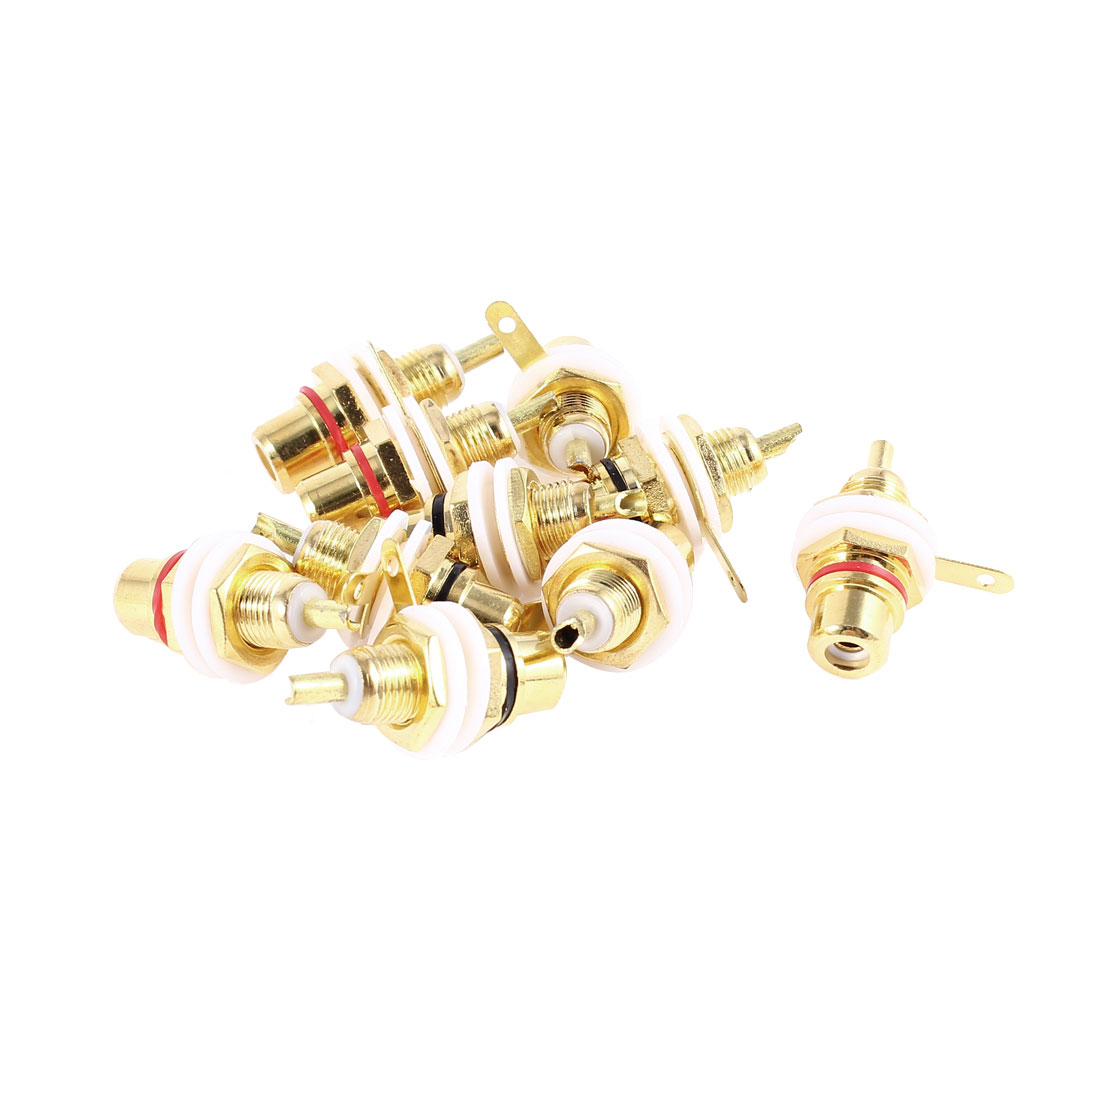 10pcs RCA Female Jack Panel Mount Chassis Audio Socket Bulkhead Connector